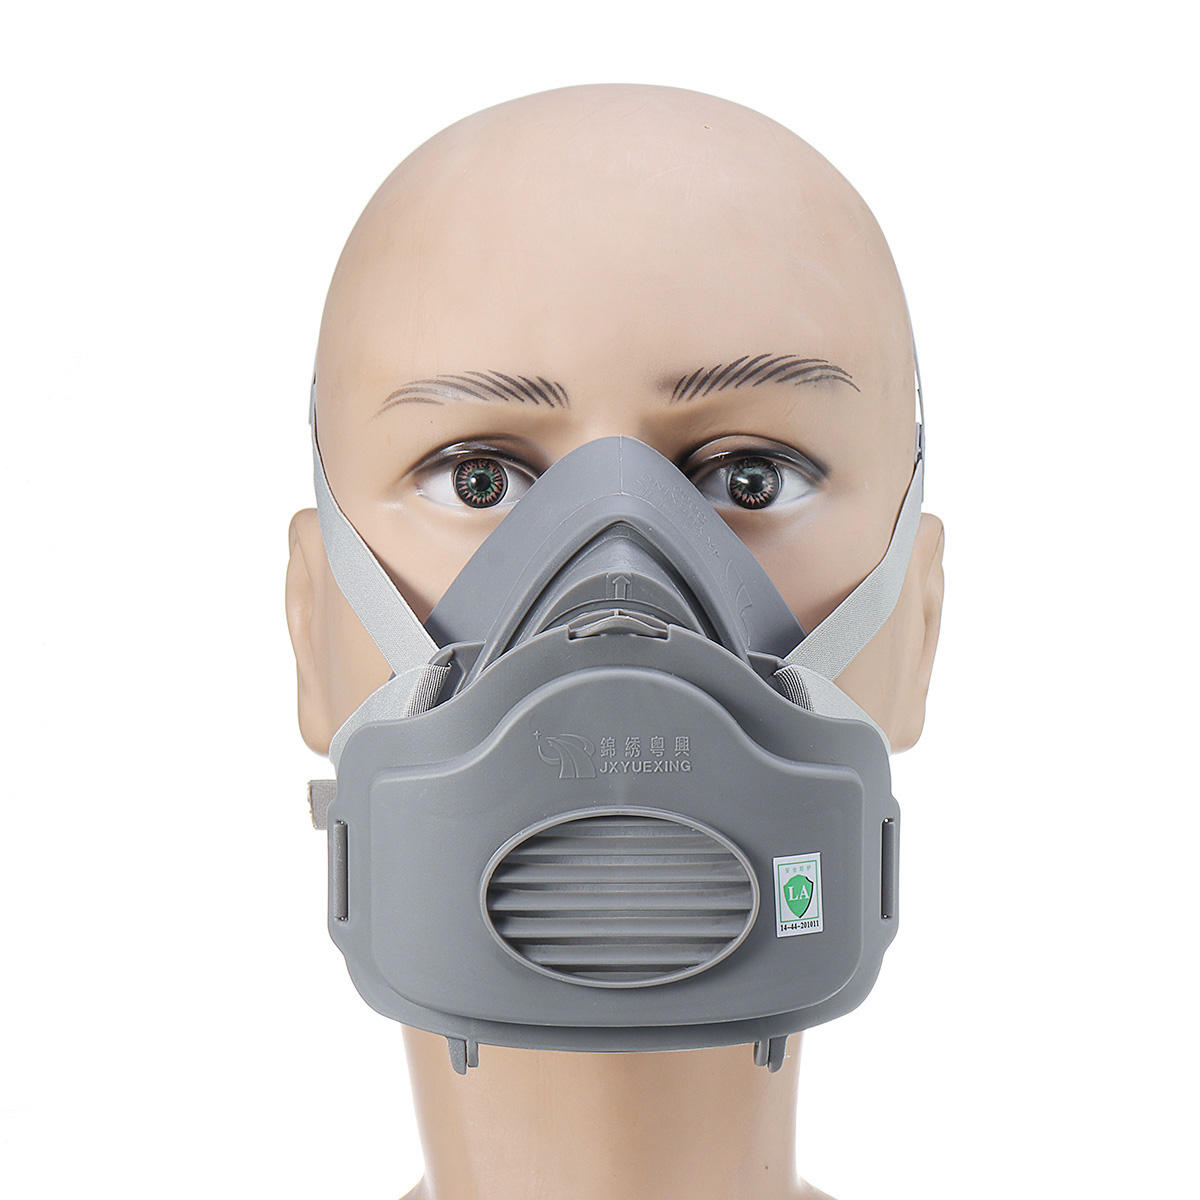 Industrial Face Dust Mask Tools Respirator amp; Pm2 Gas Professional N95 3600 6 Tools us Filter Protection 40 From Smog 04 Anti Health 5 Off